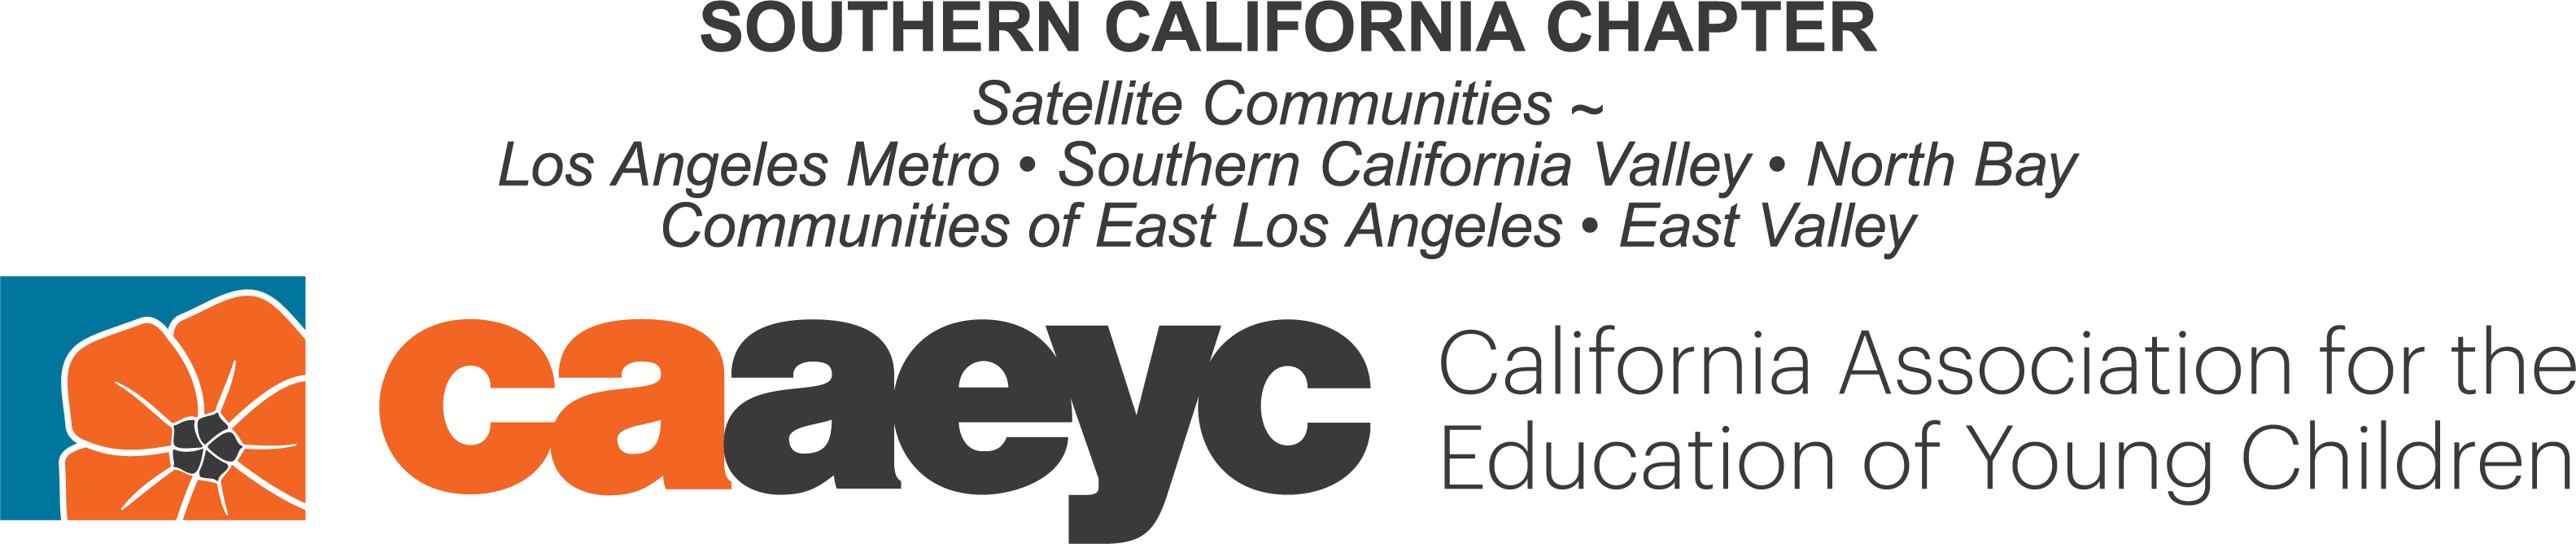 CAAEYC Southern California Chapter